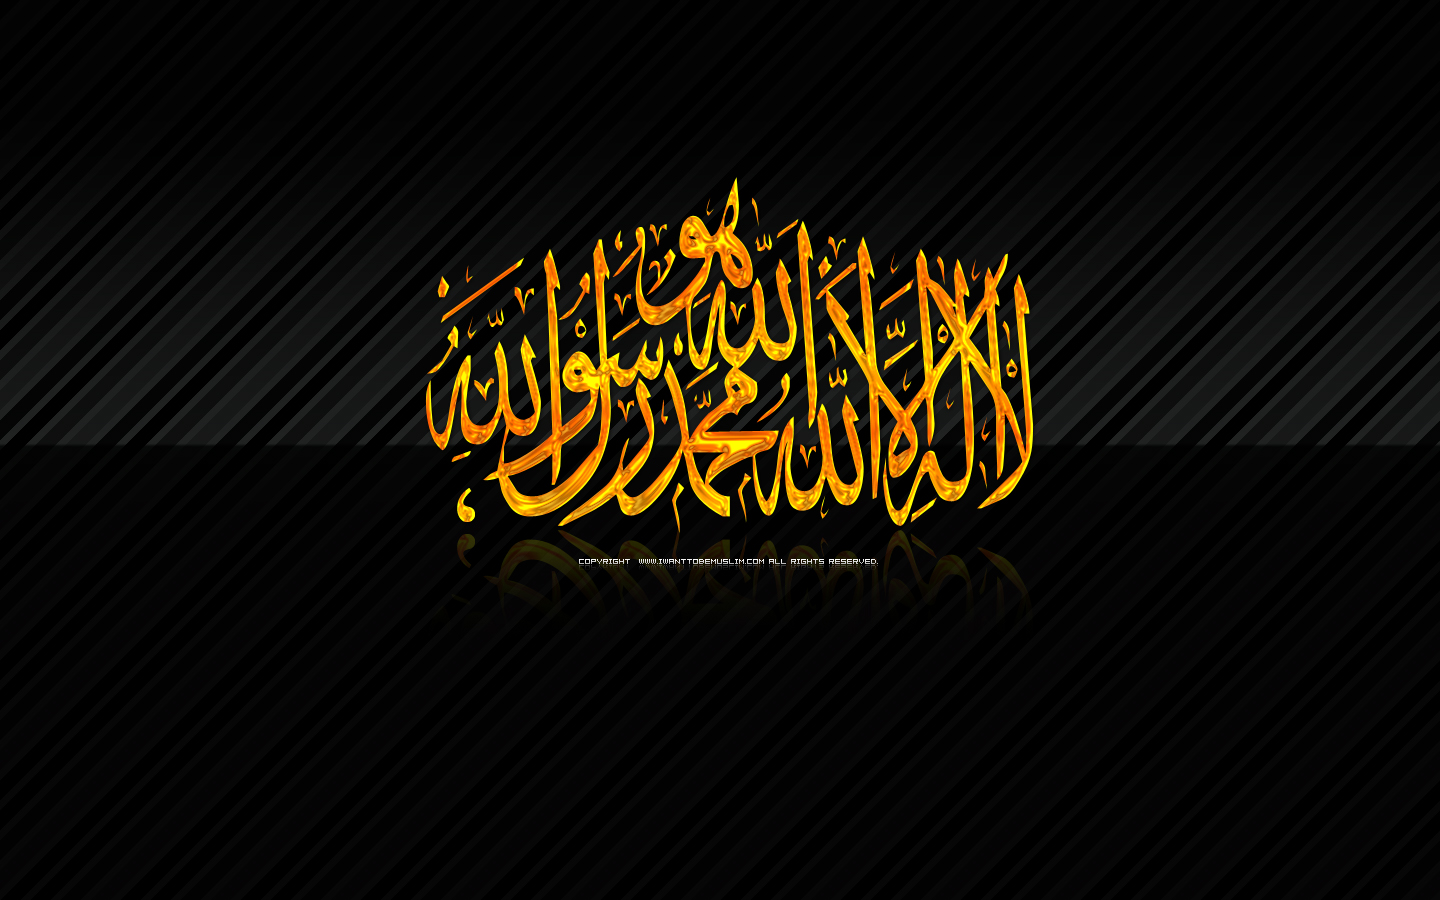 free islamic wallpaper 2011 2012 HD 1440900 english pc black gold 1440x900